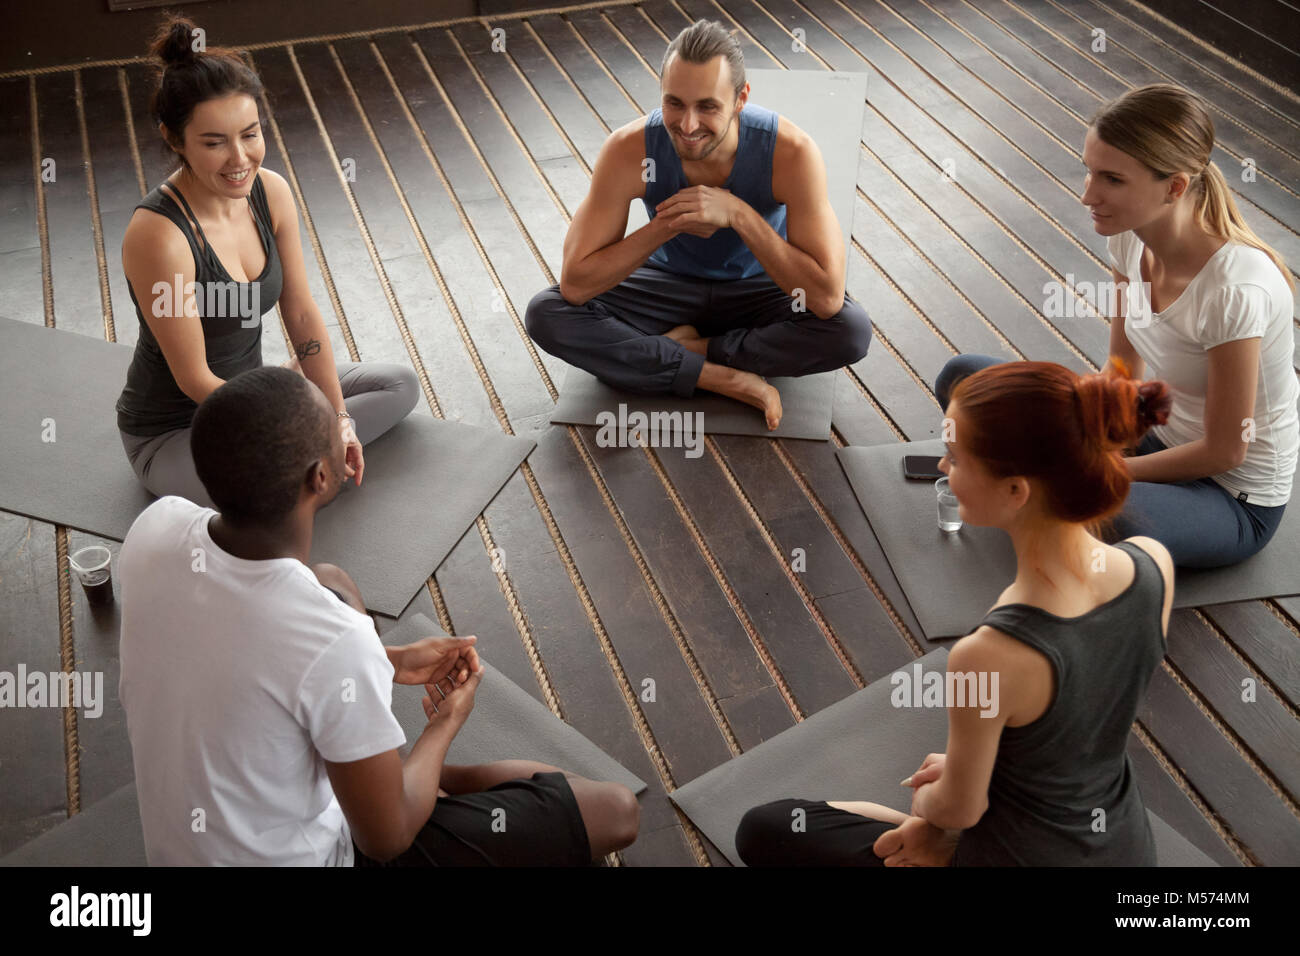 Divers smiling people assis sur des nattes avant de parler de train de yoga Photo Stock